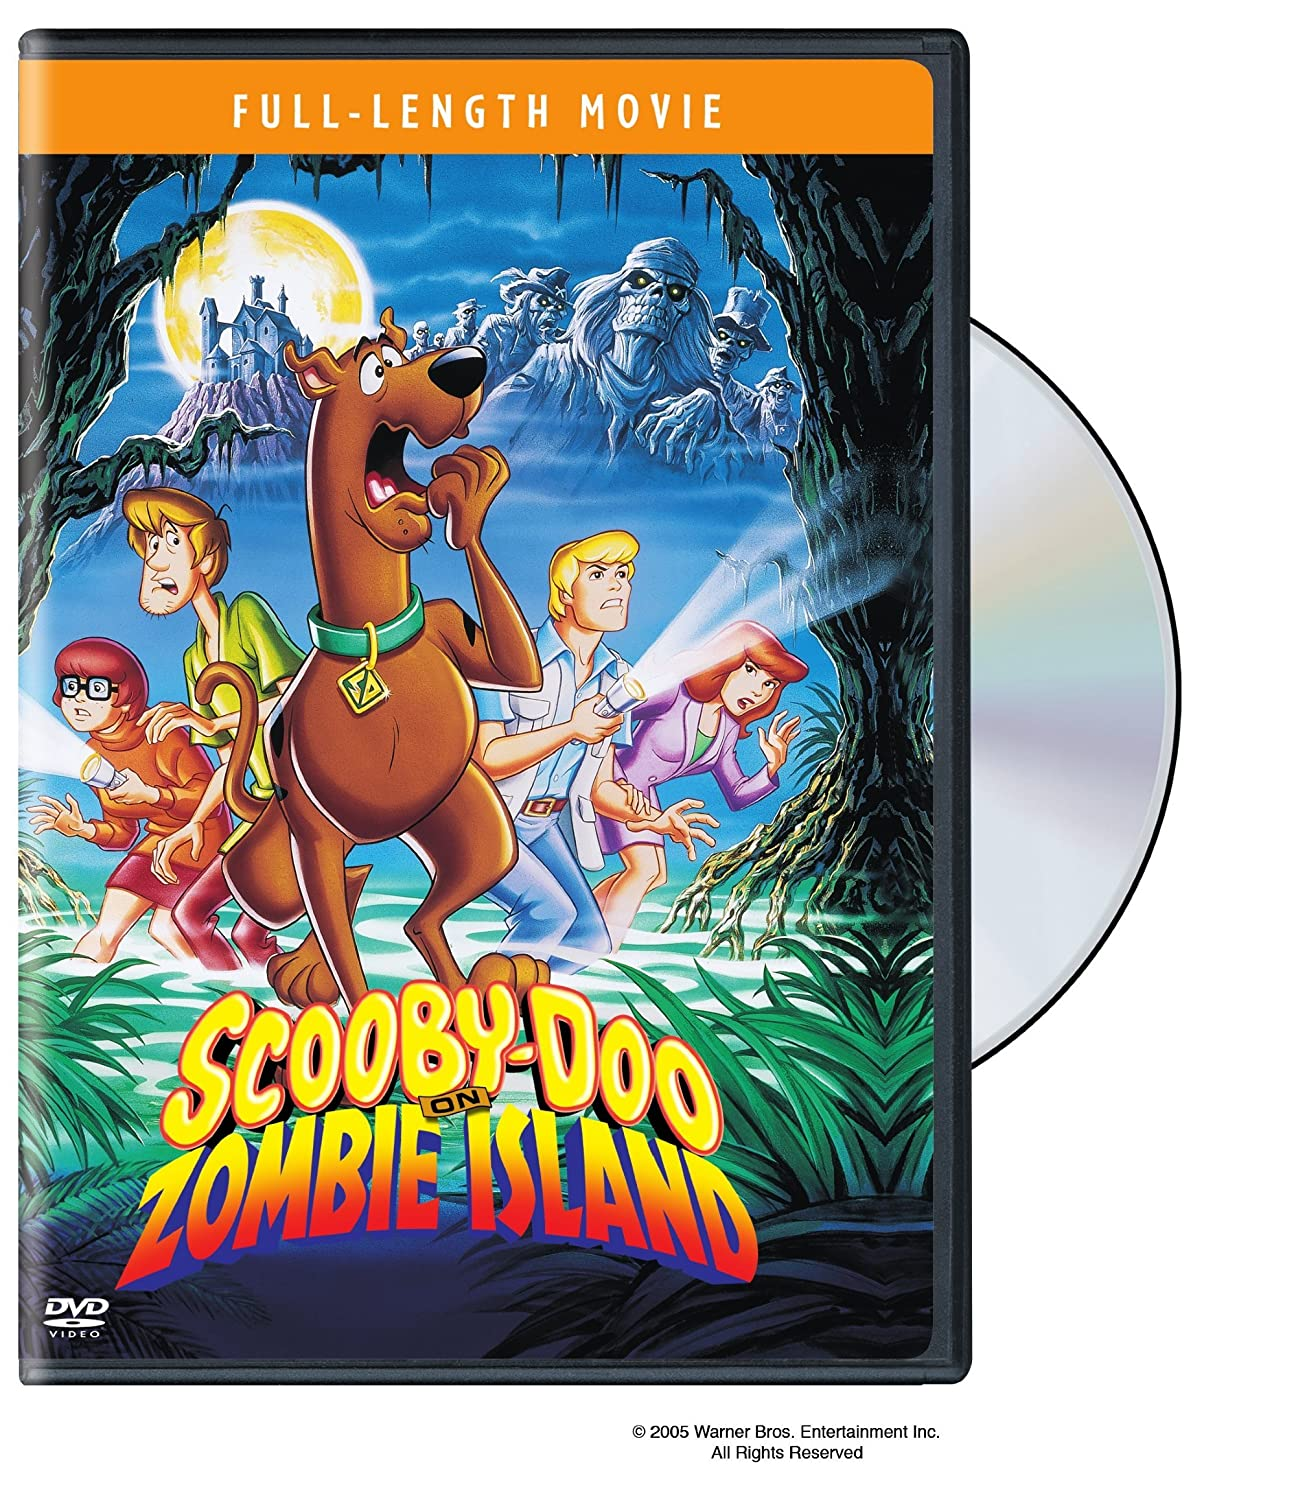 Scooby-Doo on Zombie Island Jim Cummings Billy West B.j. Ward Mary Bergman